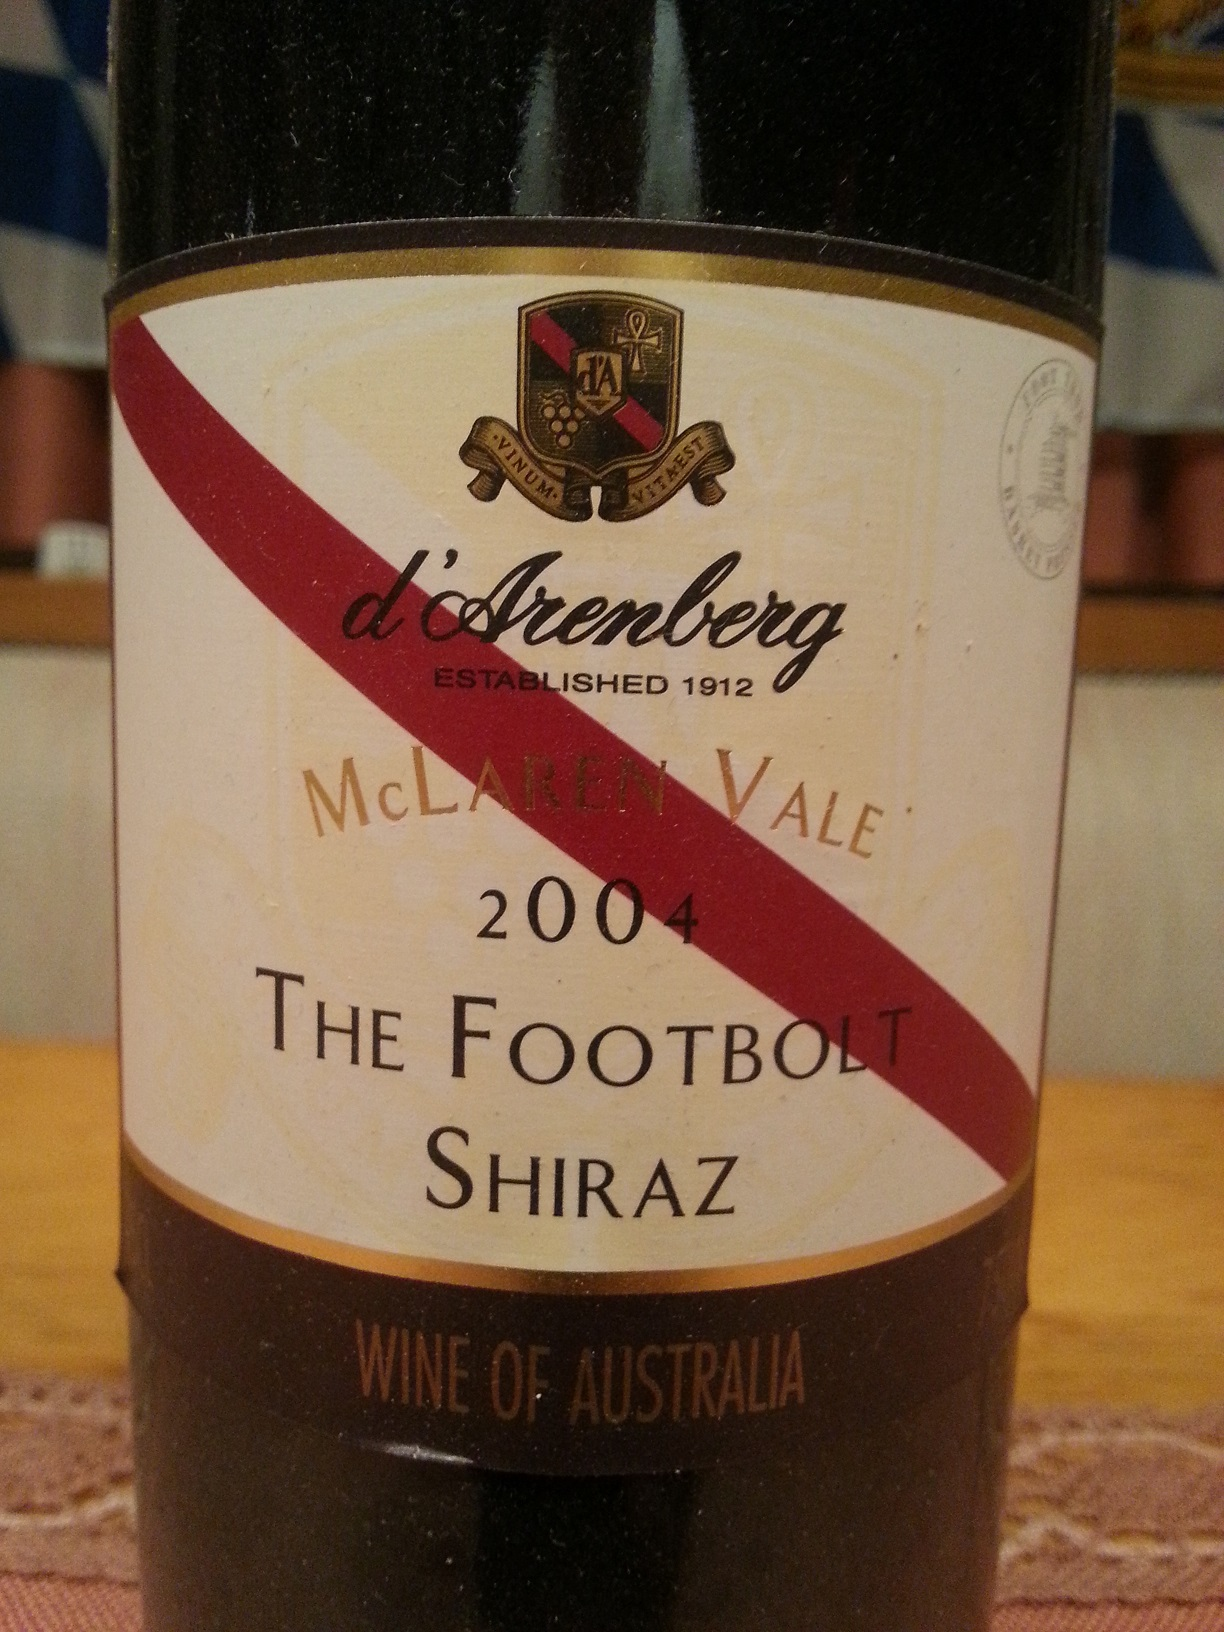 2004 The Footbolt Shiraz | d'Arenberg